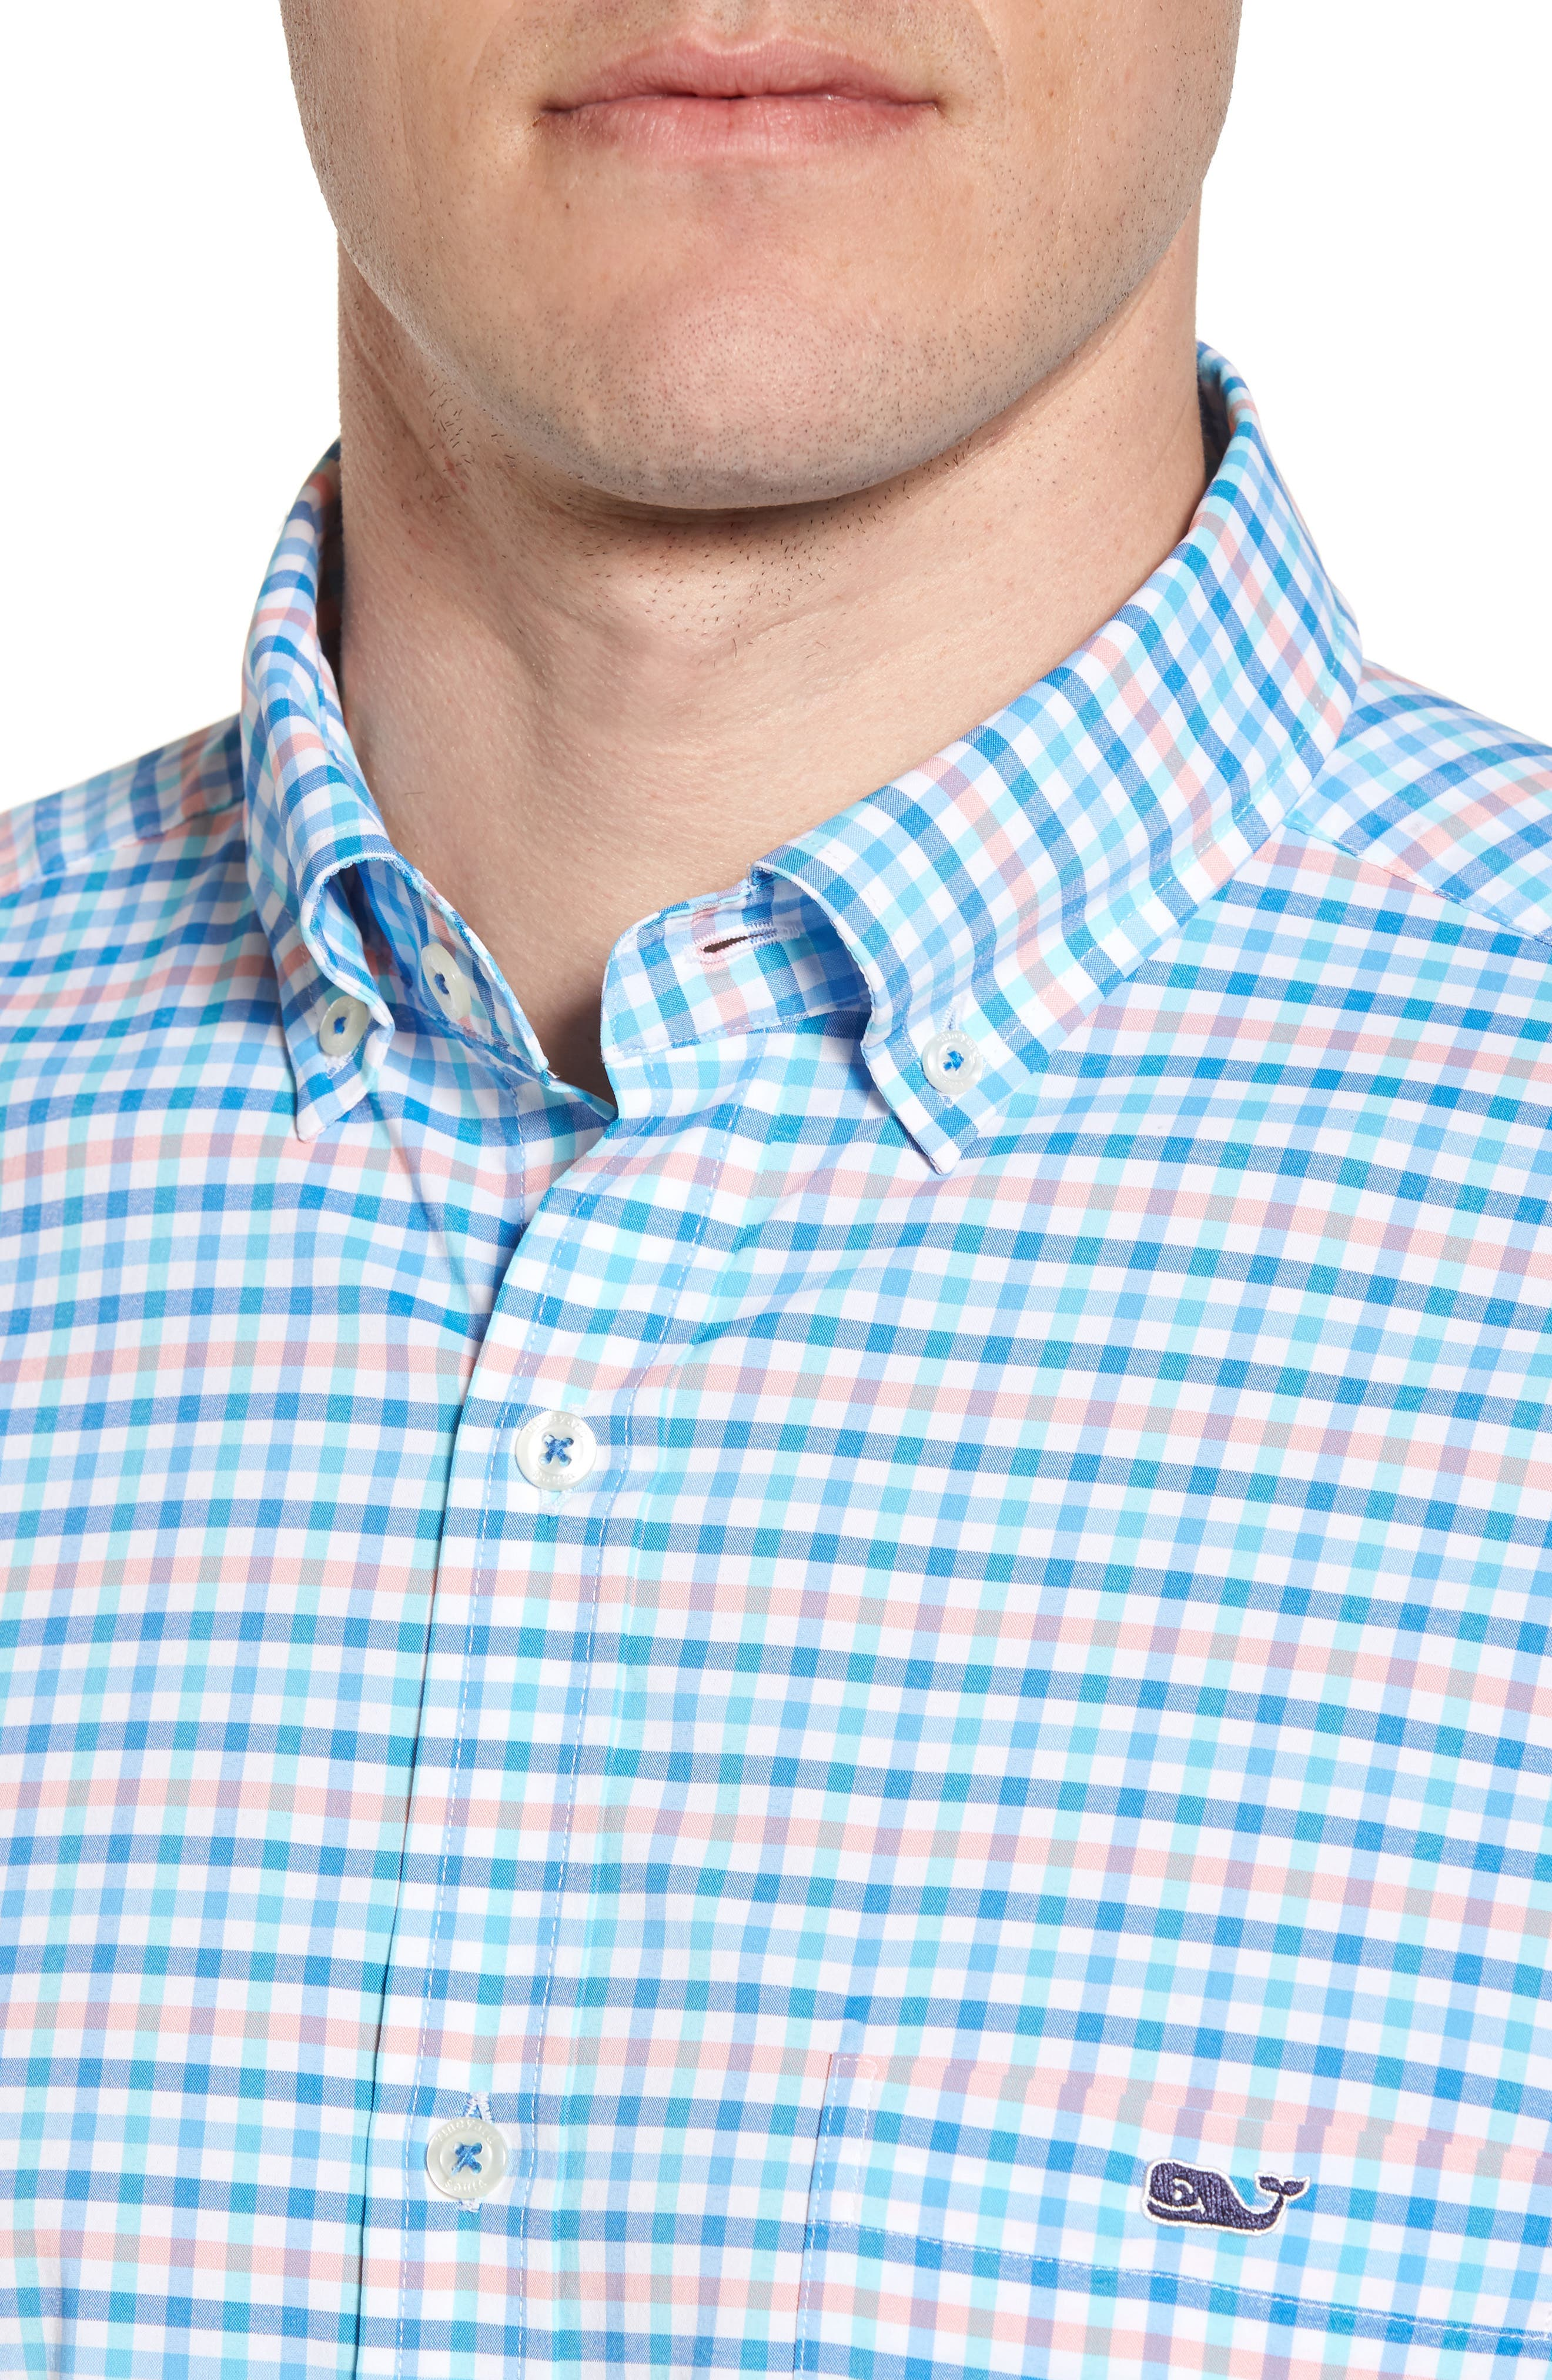 Coco Bay Classic Fit Check Performance Sport Shirt,                             Alternate thumbnail 4, color,                             Ocean Breeze